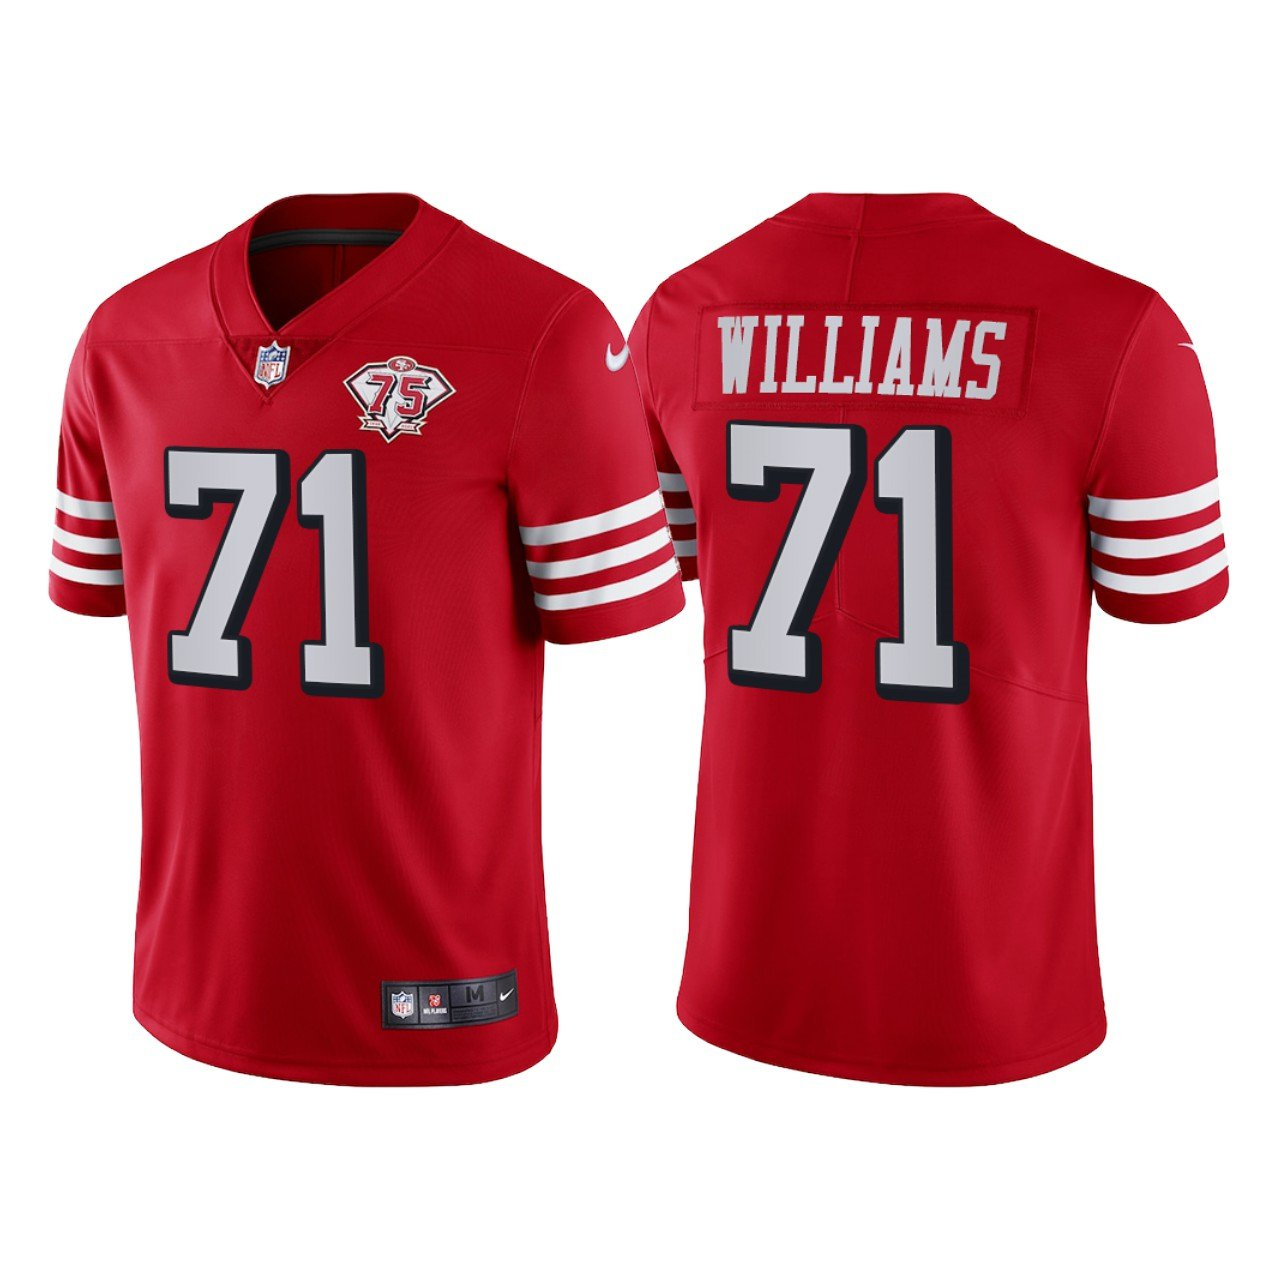 Men's #71 Trent Williams San Francisco 49ers Red Throwback Limited Jersey 75th Anniversary Stitched